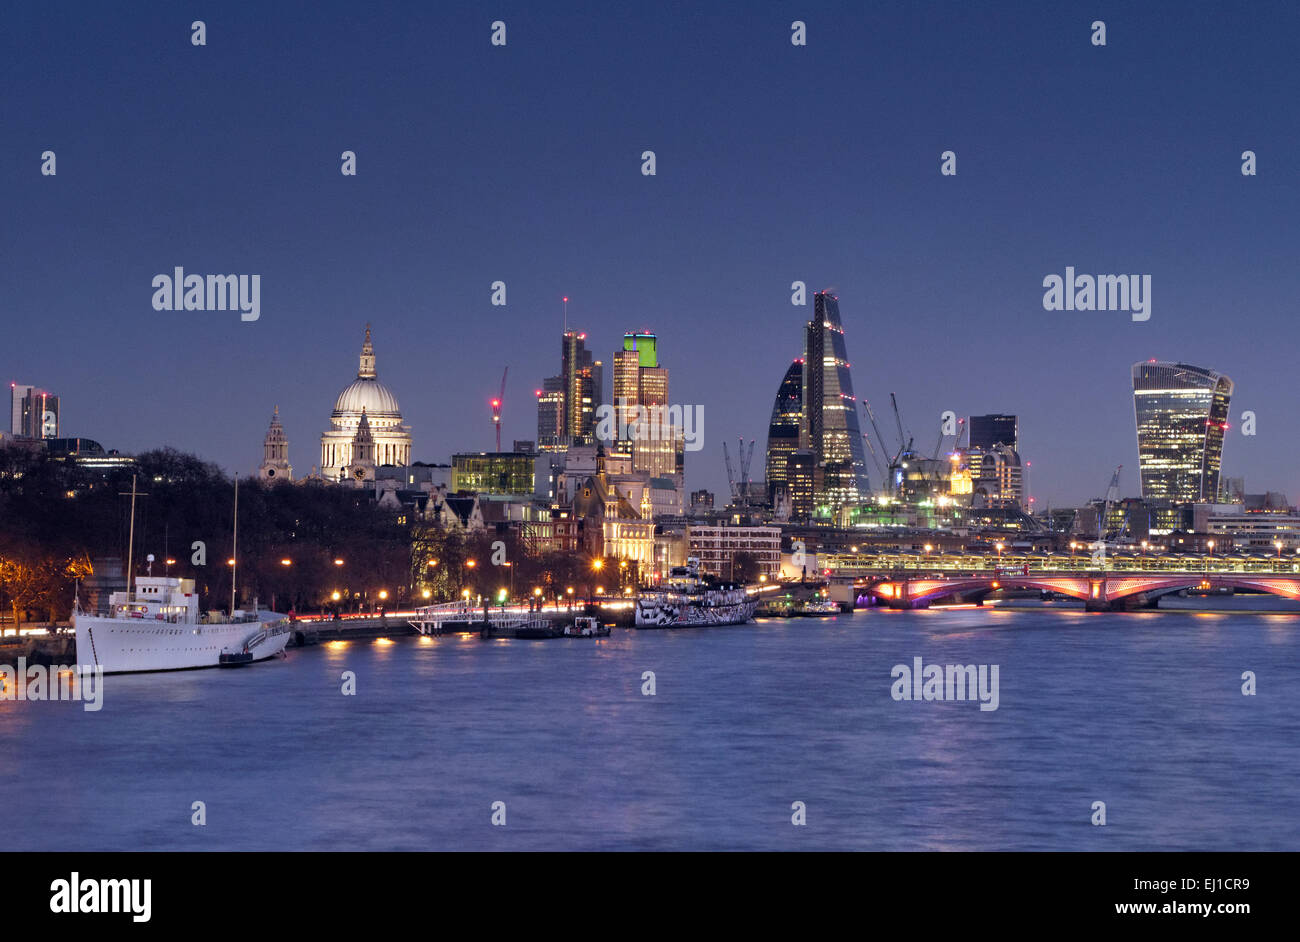 LONDON CITY FINANCE SKYLINE NIGHT DUSK THAMES City of London cityscape lights & River Thames from Waterloo Bridge - Stock Image